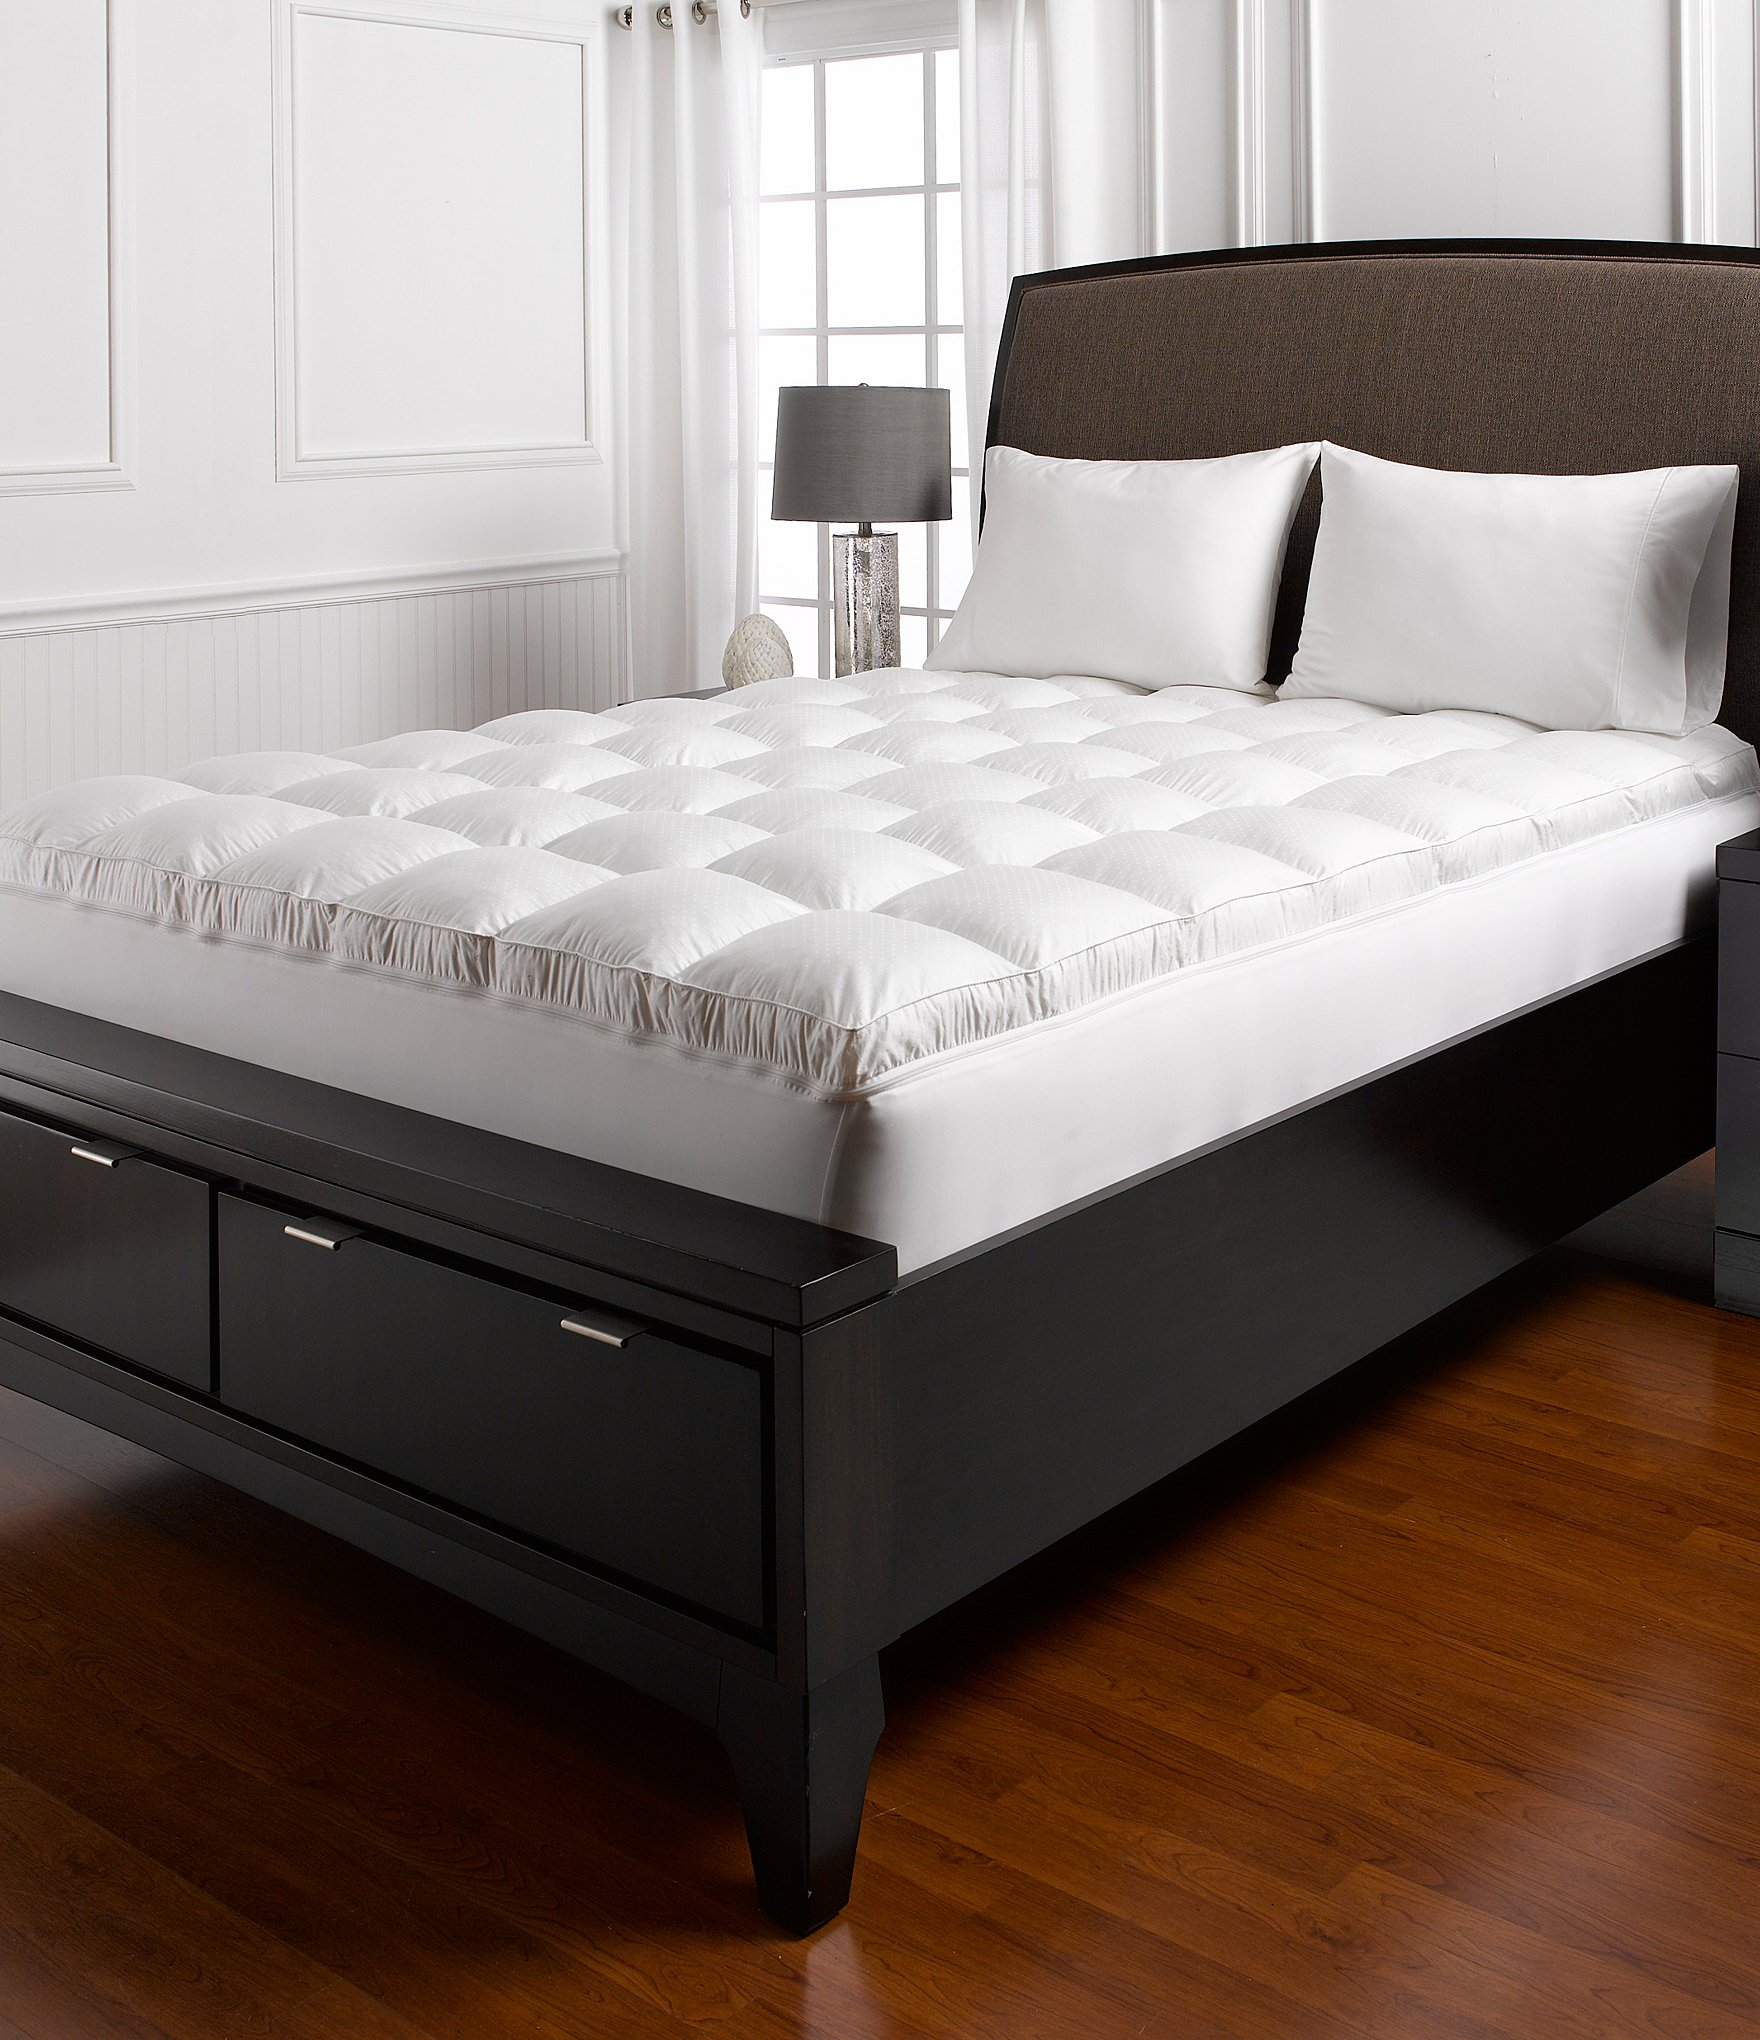 brand zi bed grey southern dillards home bedding collections living